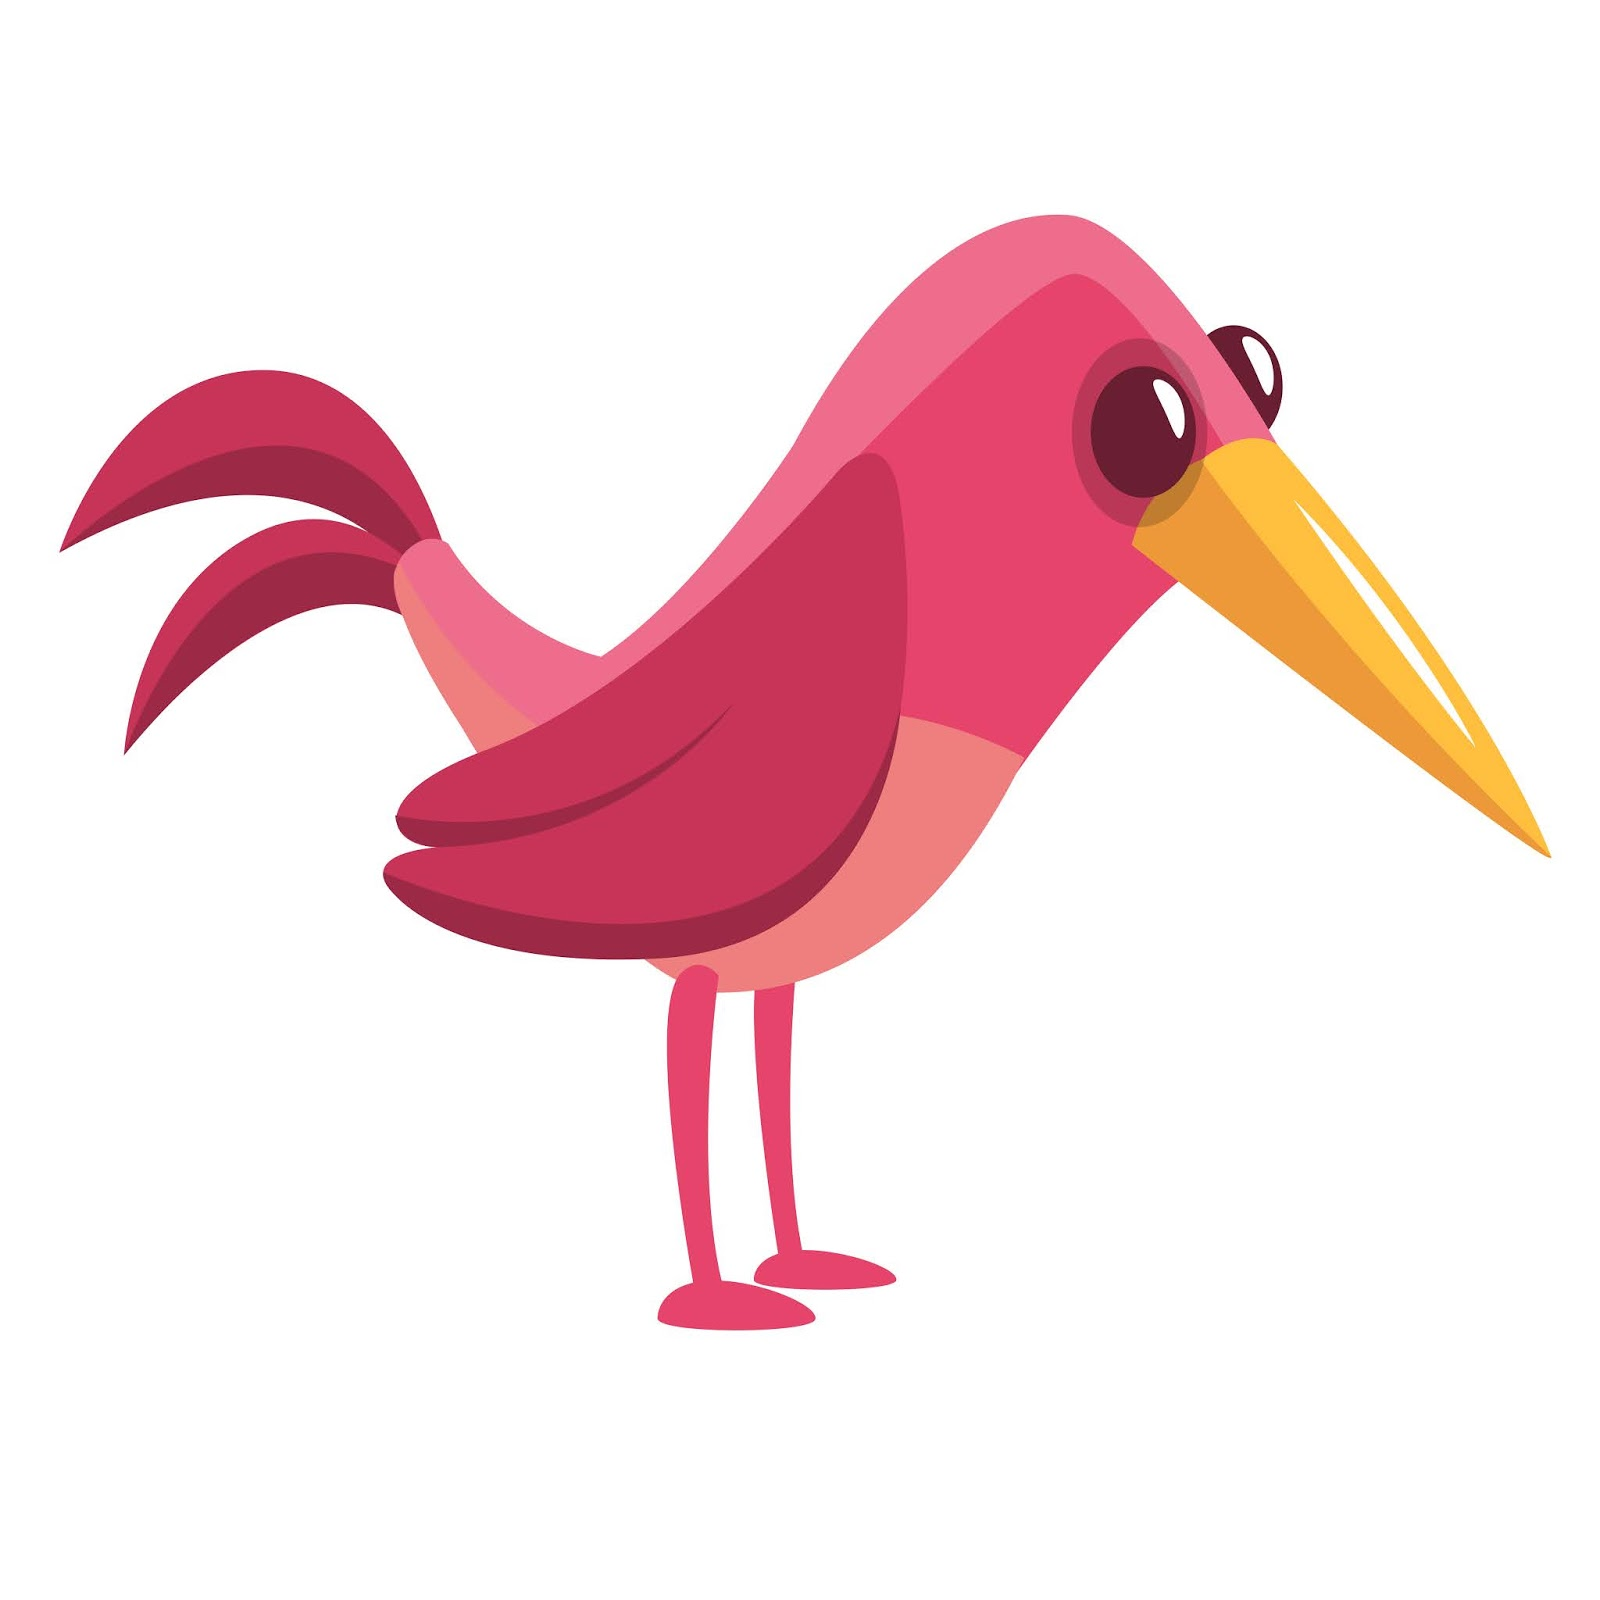 Cartoon Bird Free Download Vector CDR, AI, EPS and PNG Formats